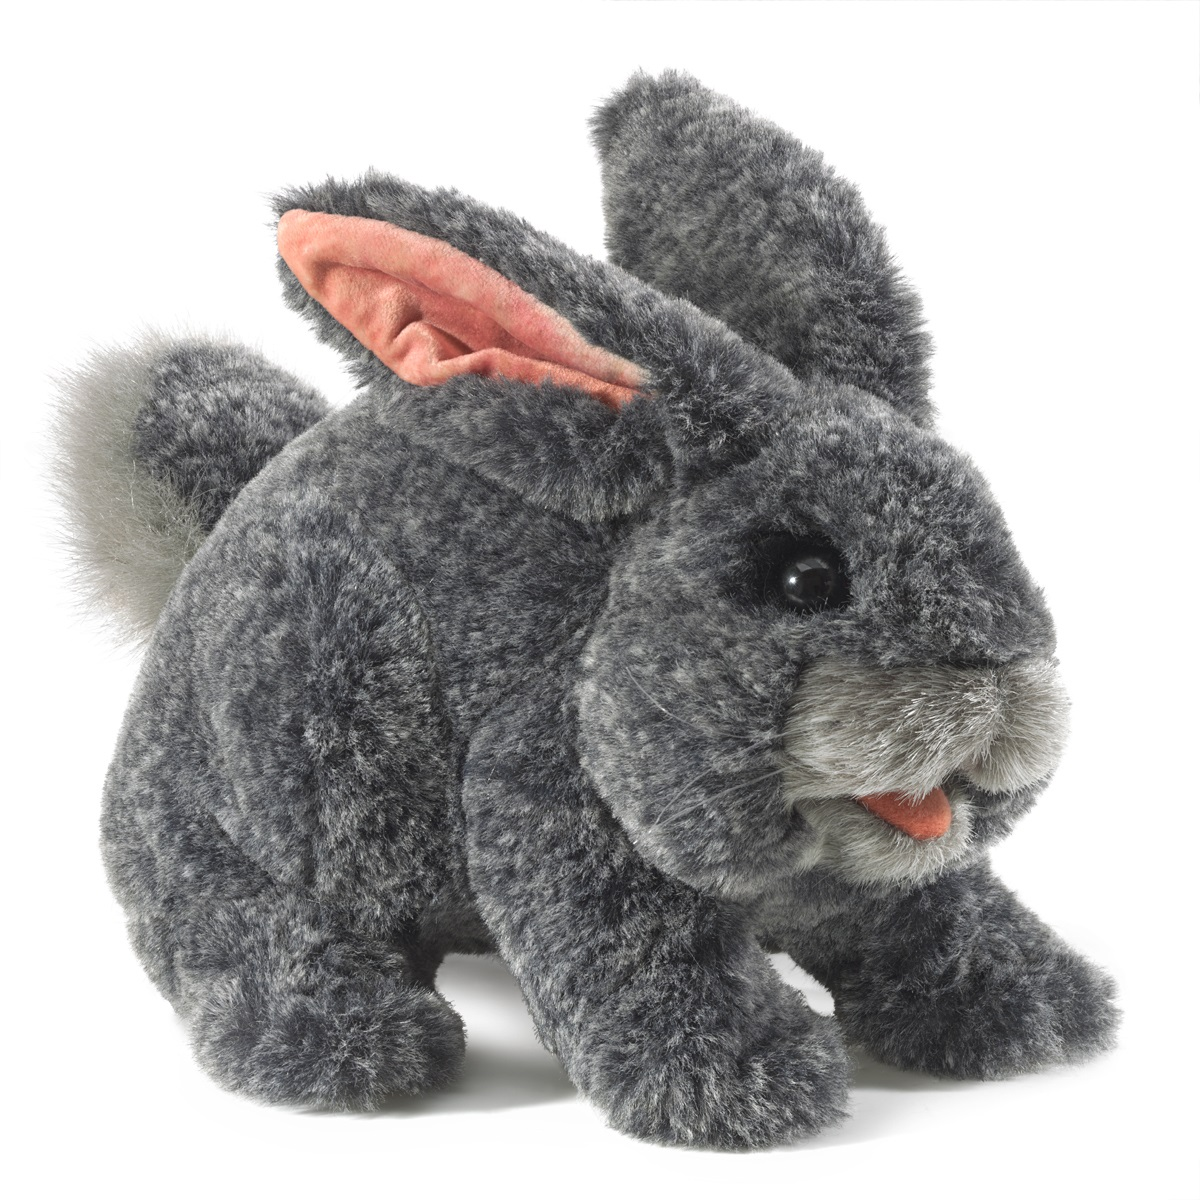 Gray Bunny Rabbit Hand Puppet by Folkmanis  3168